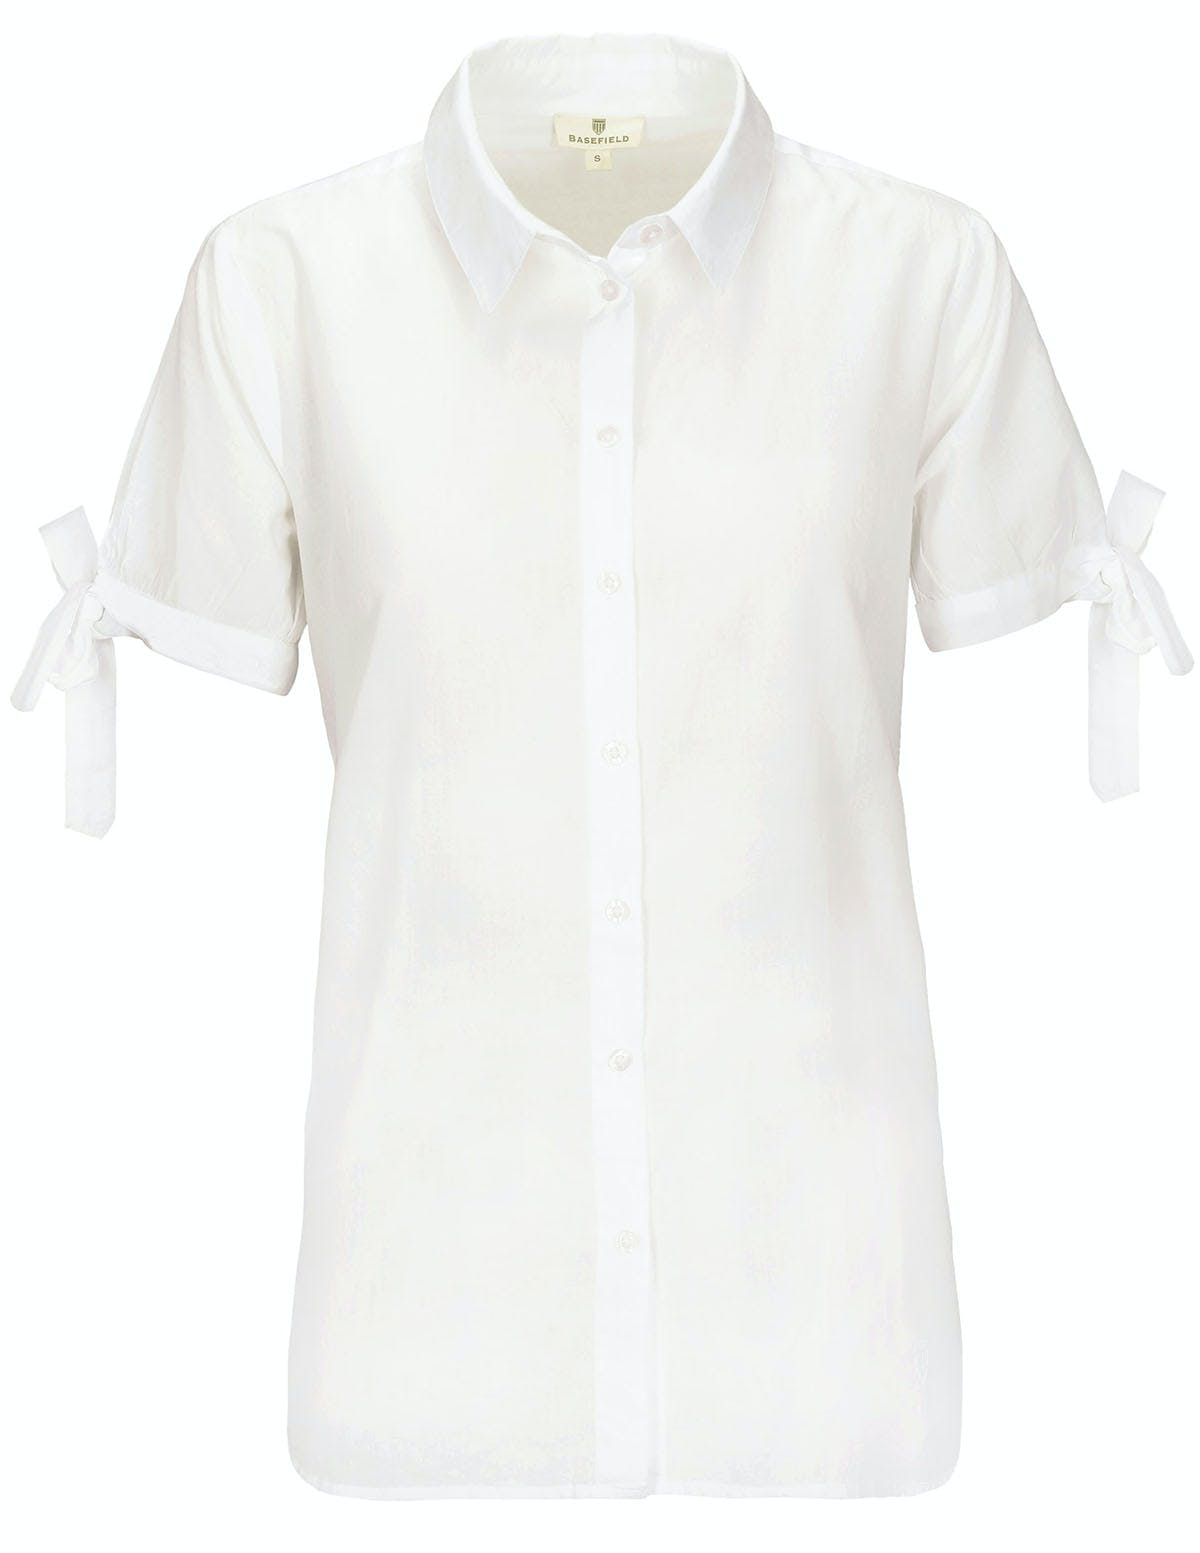 229005568-white__bluse__all